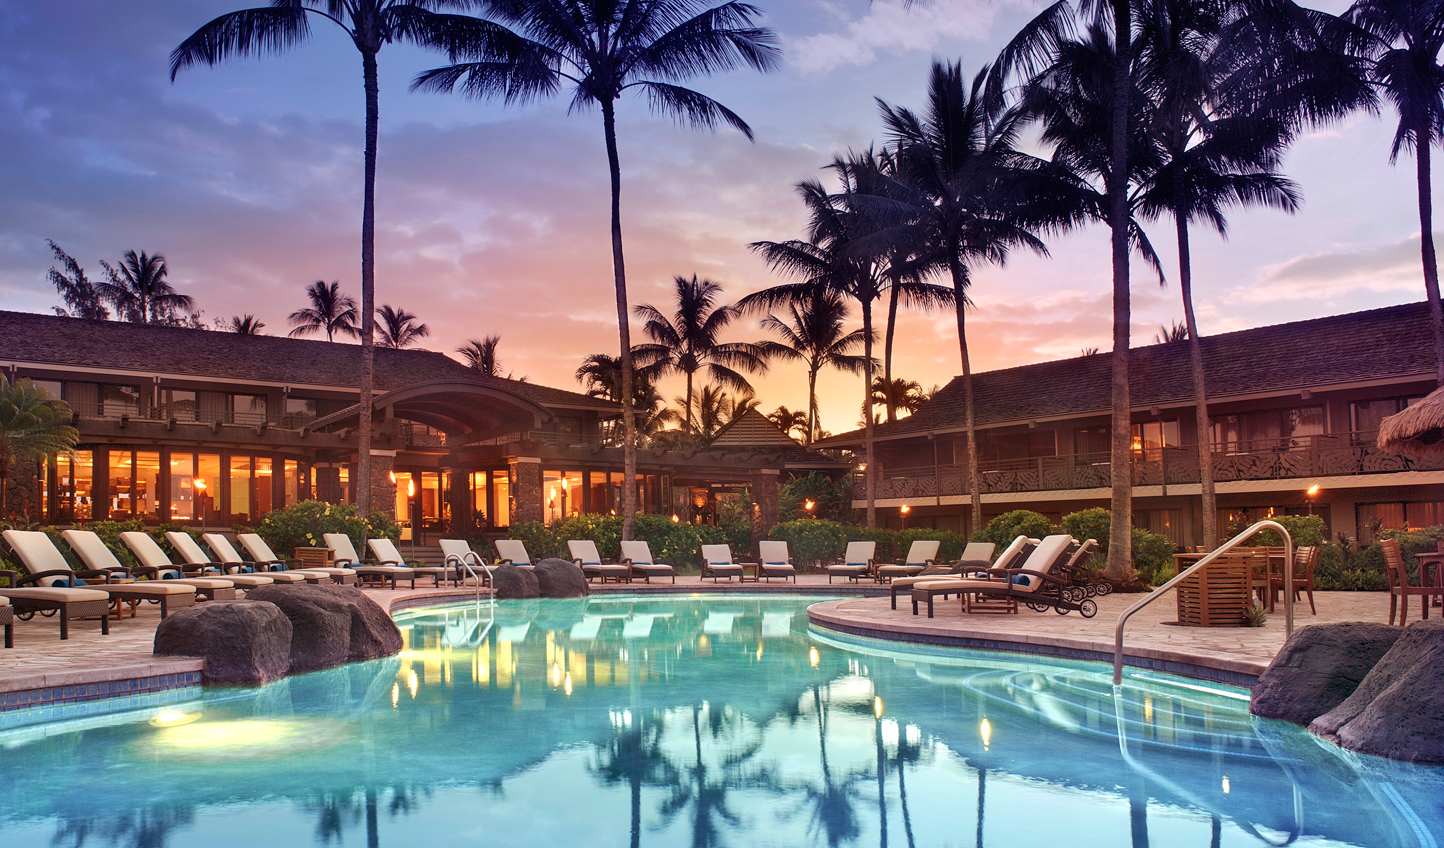 Watch the sun go down on another day in Kauai